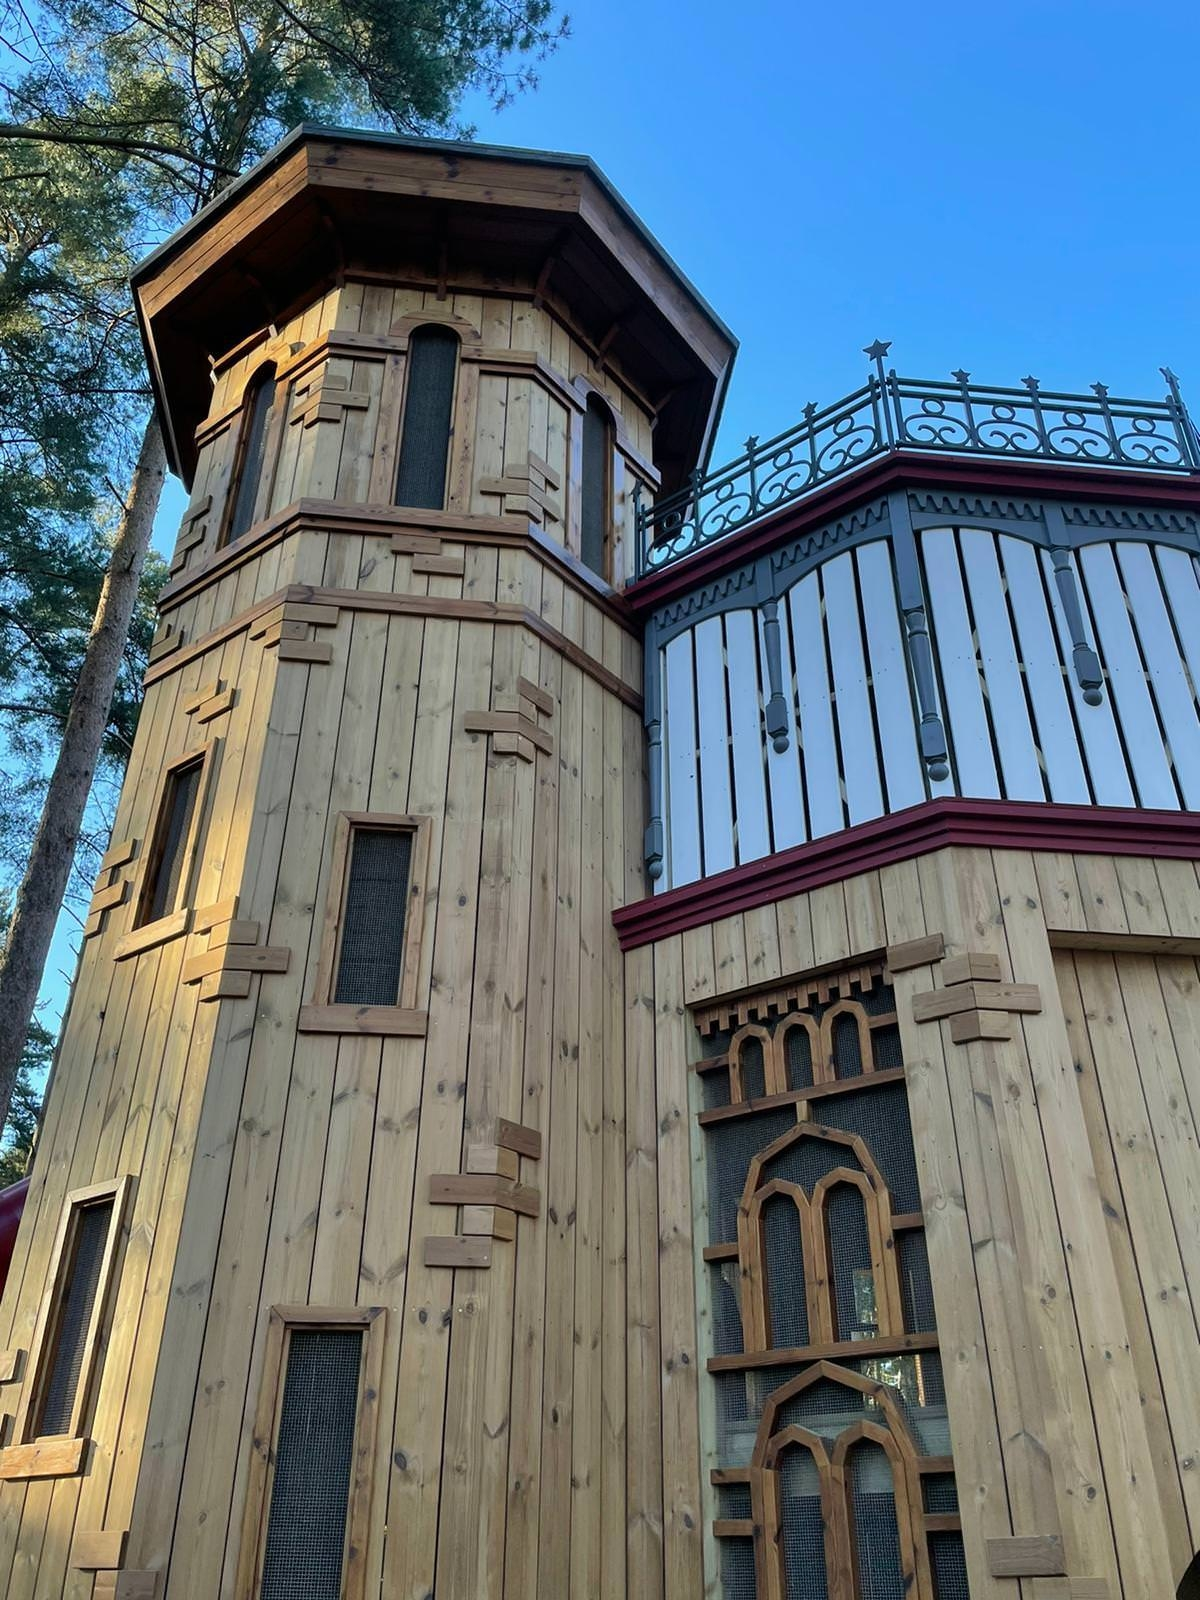 The new adventure play area at Sandringham by CAP.Co water tower details